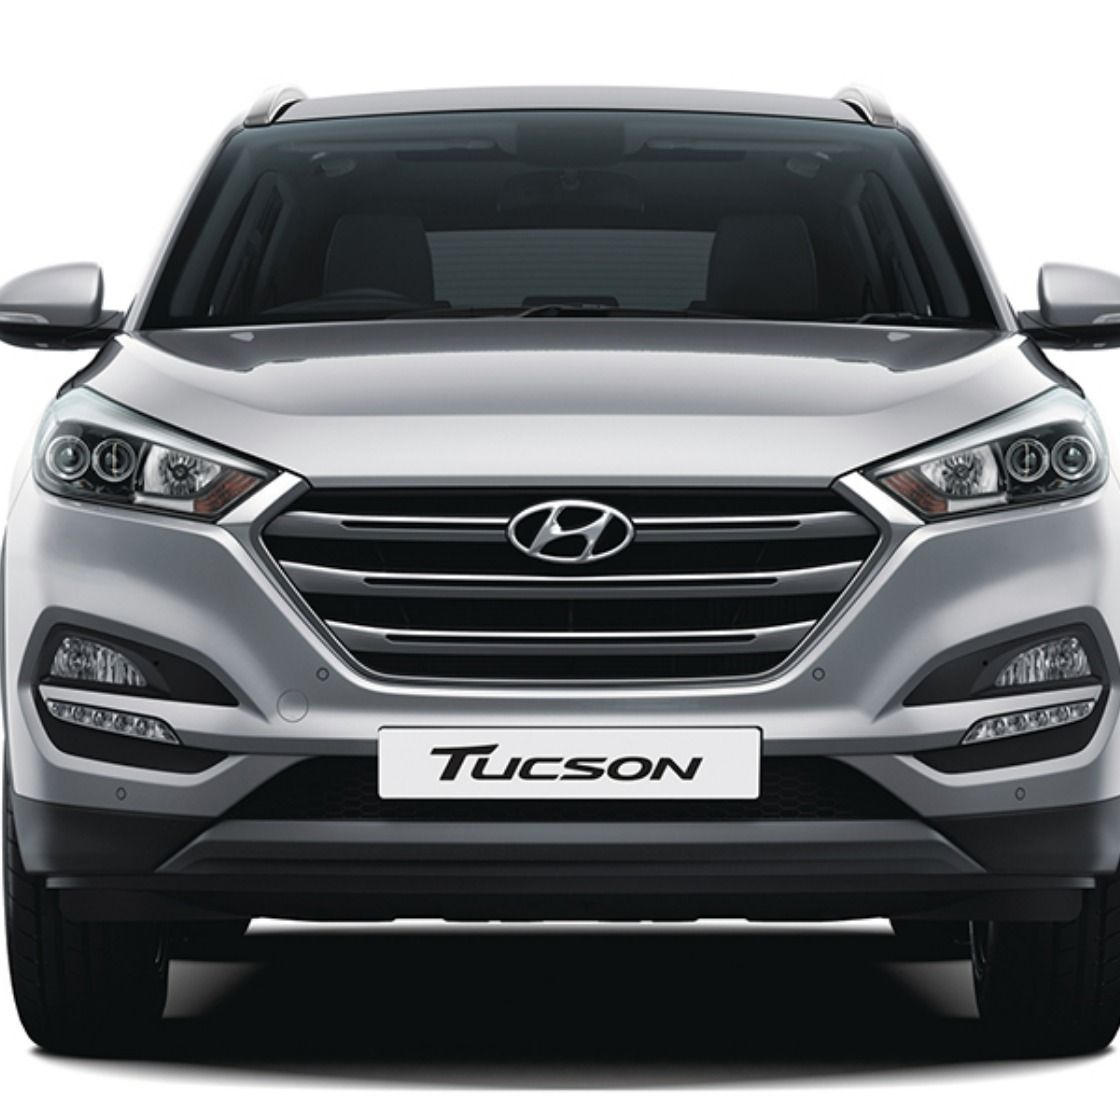 Front View of Tucson The SUV for elite Hyundai cars